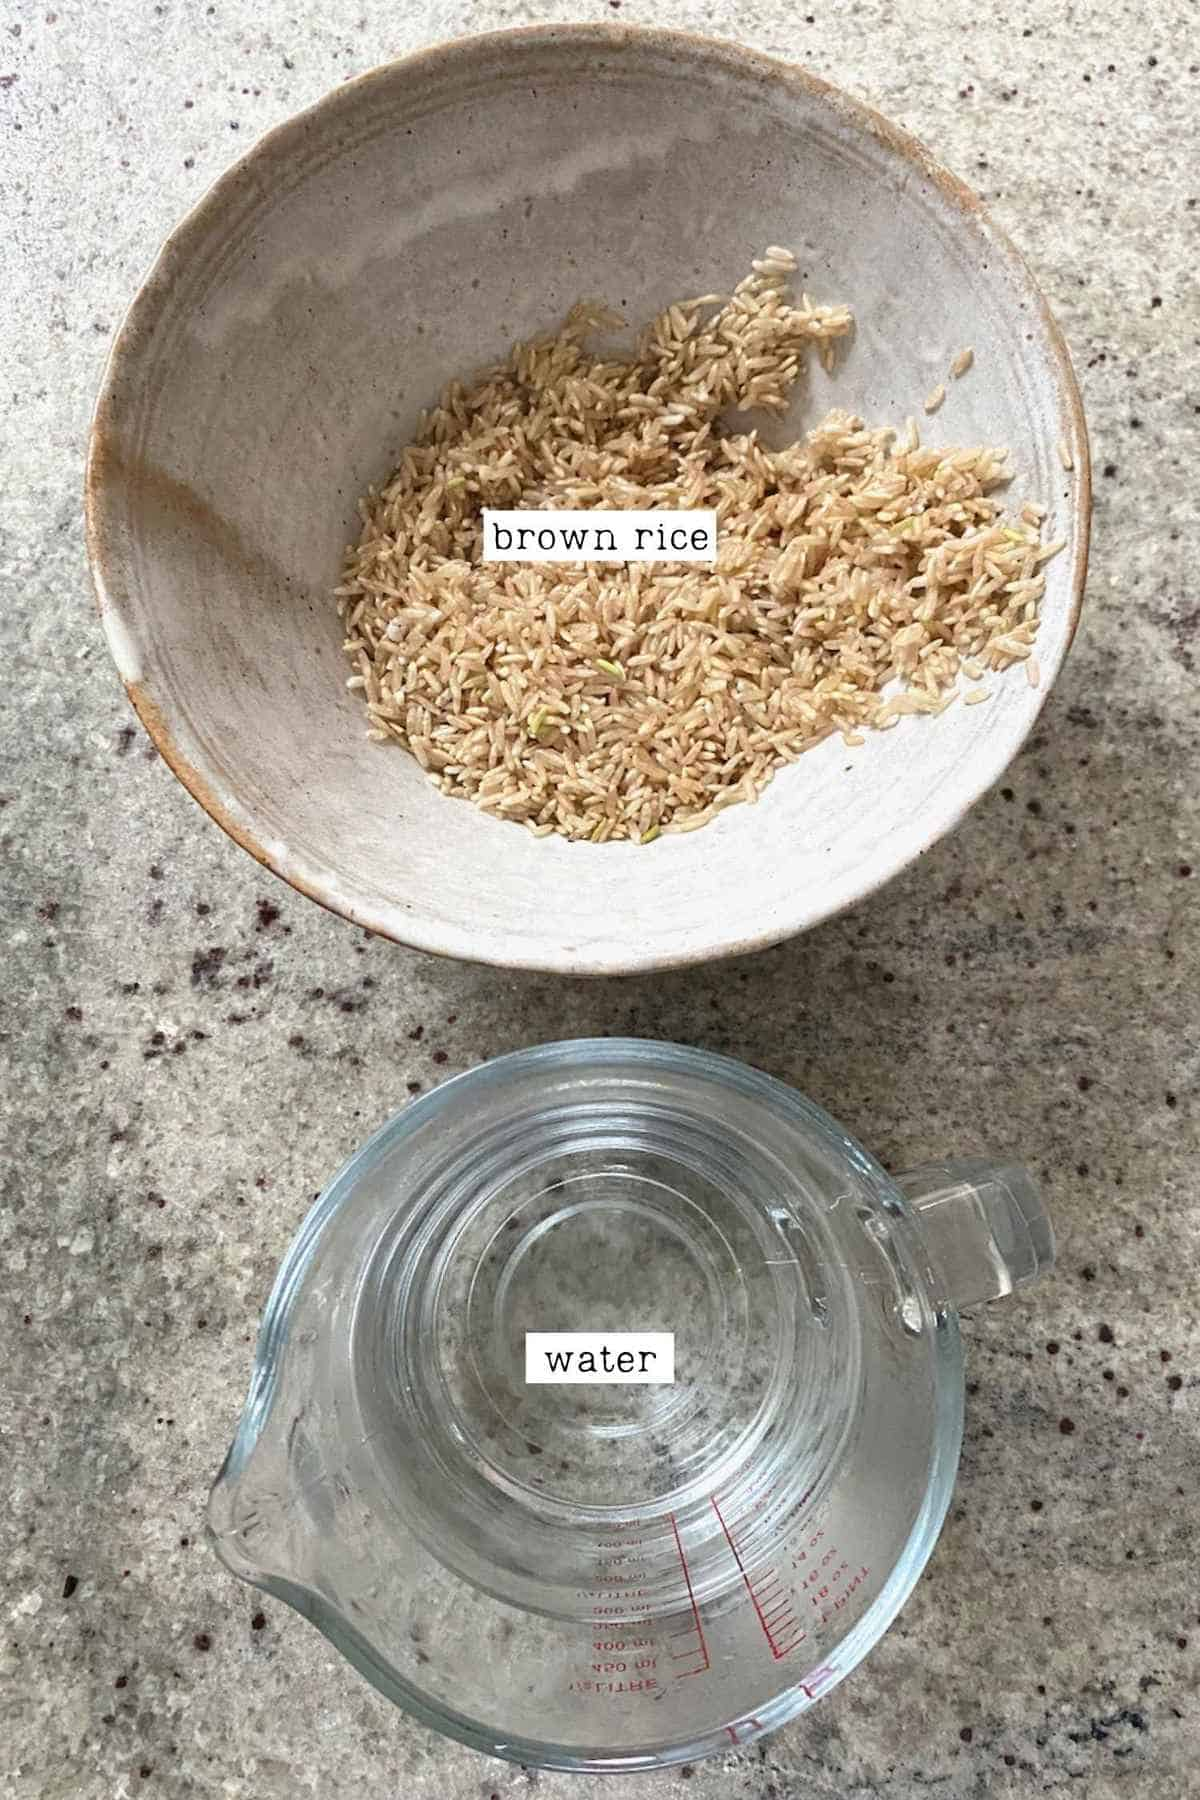 Brown Rice in a bowl and Water in a glass measuring cup